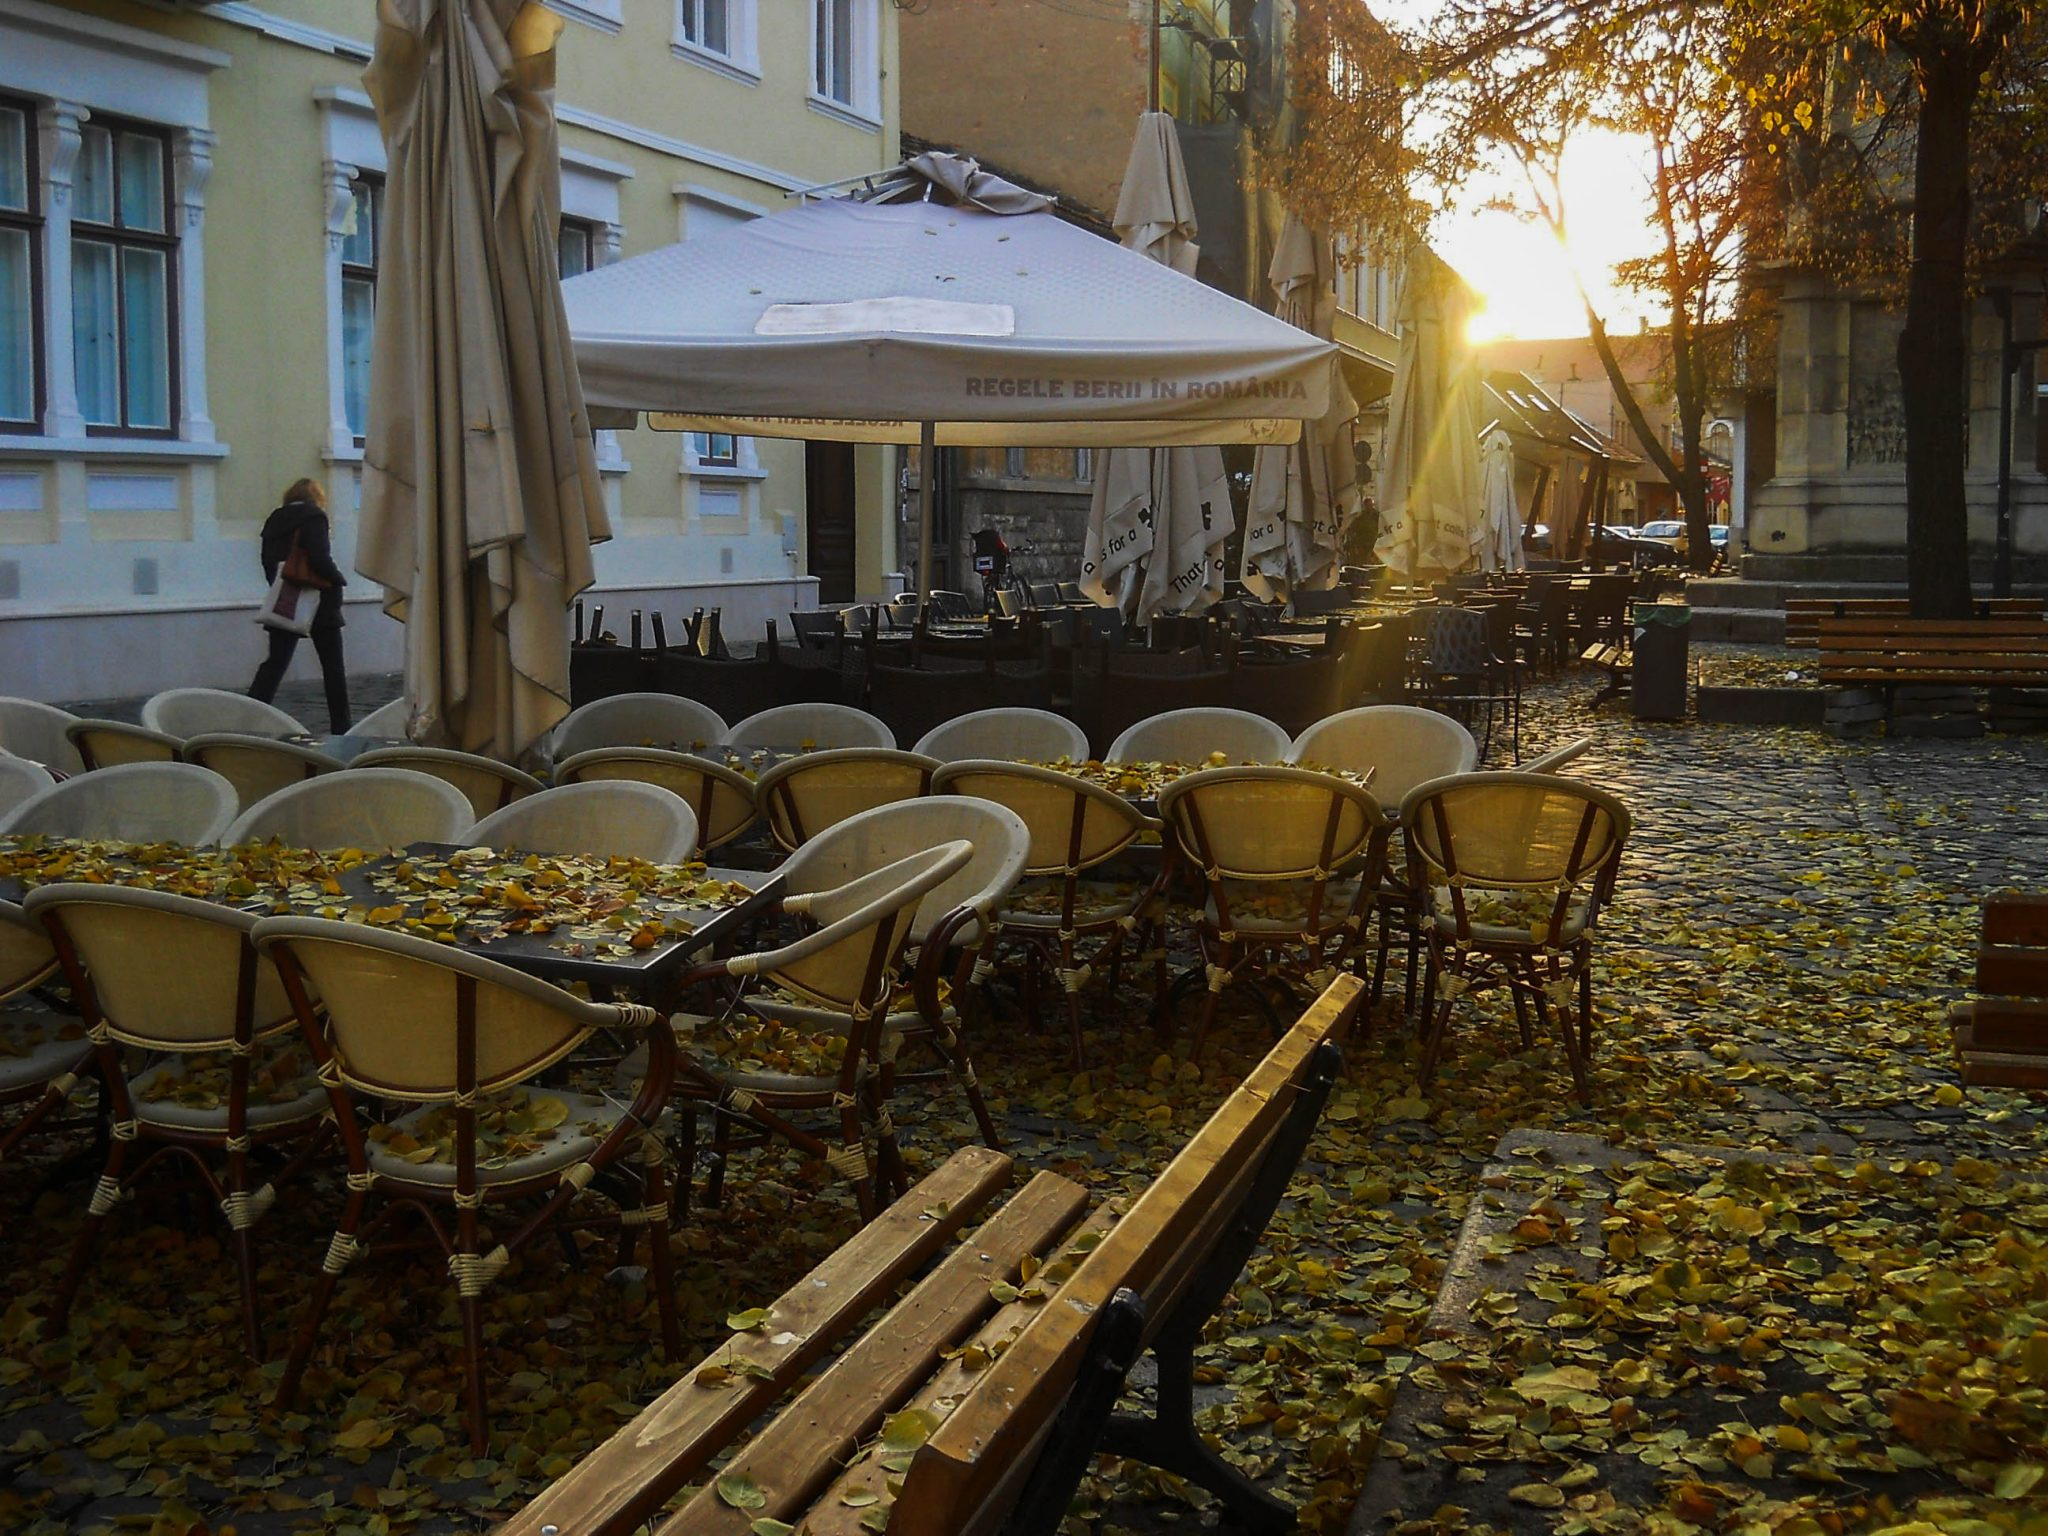 Cafe waiting to be opened during an autumn day - A complete travel guide to Cluj-Napoca